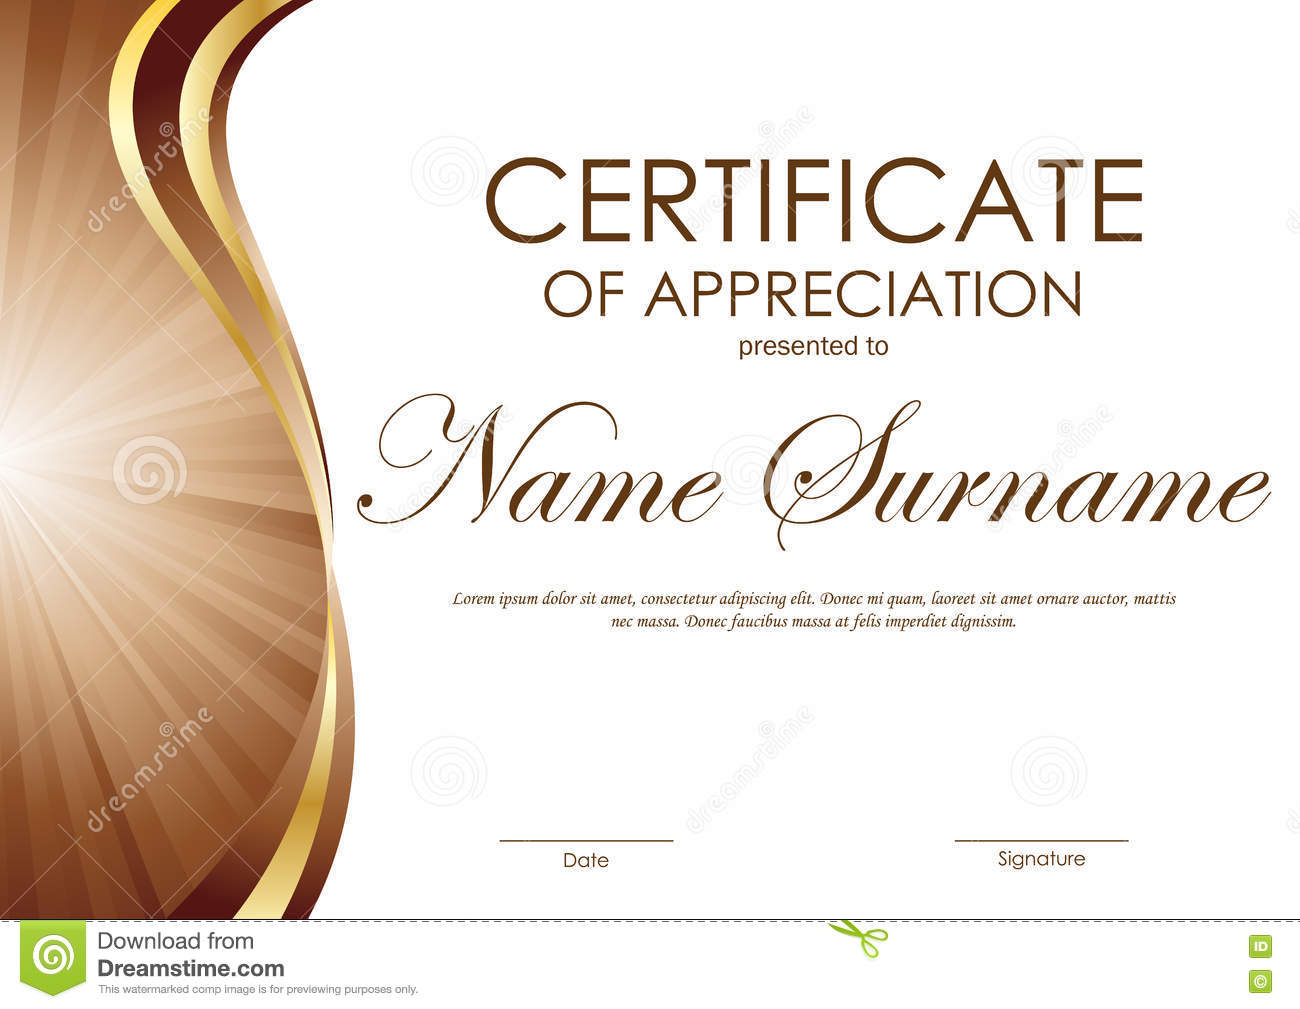 Appreciation templates free roho4senses appreciation templates free yelopaper Choice Image